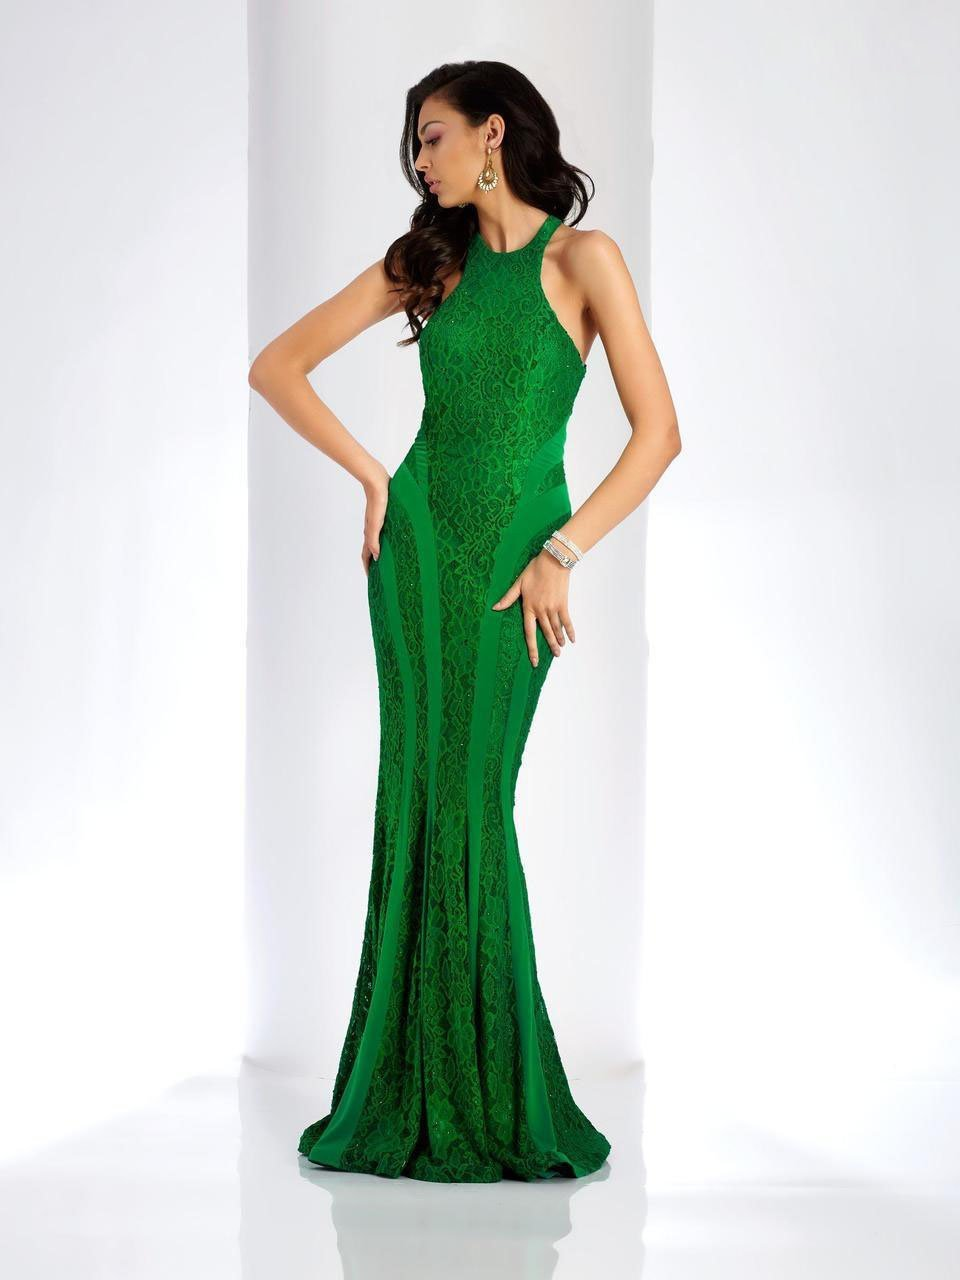 Clarisse - 4931 Embroidered Halter Sheath Dress in Green